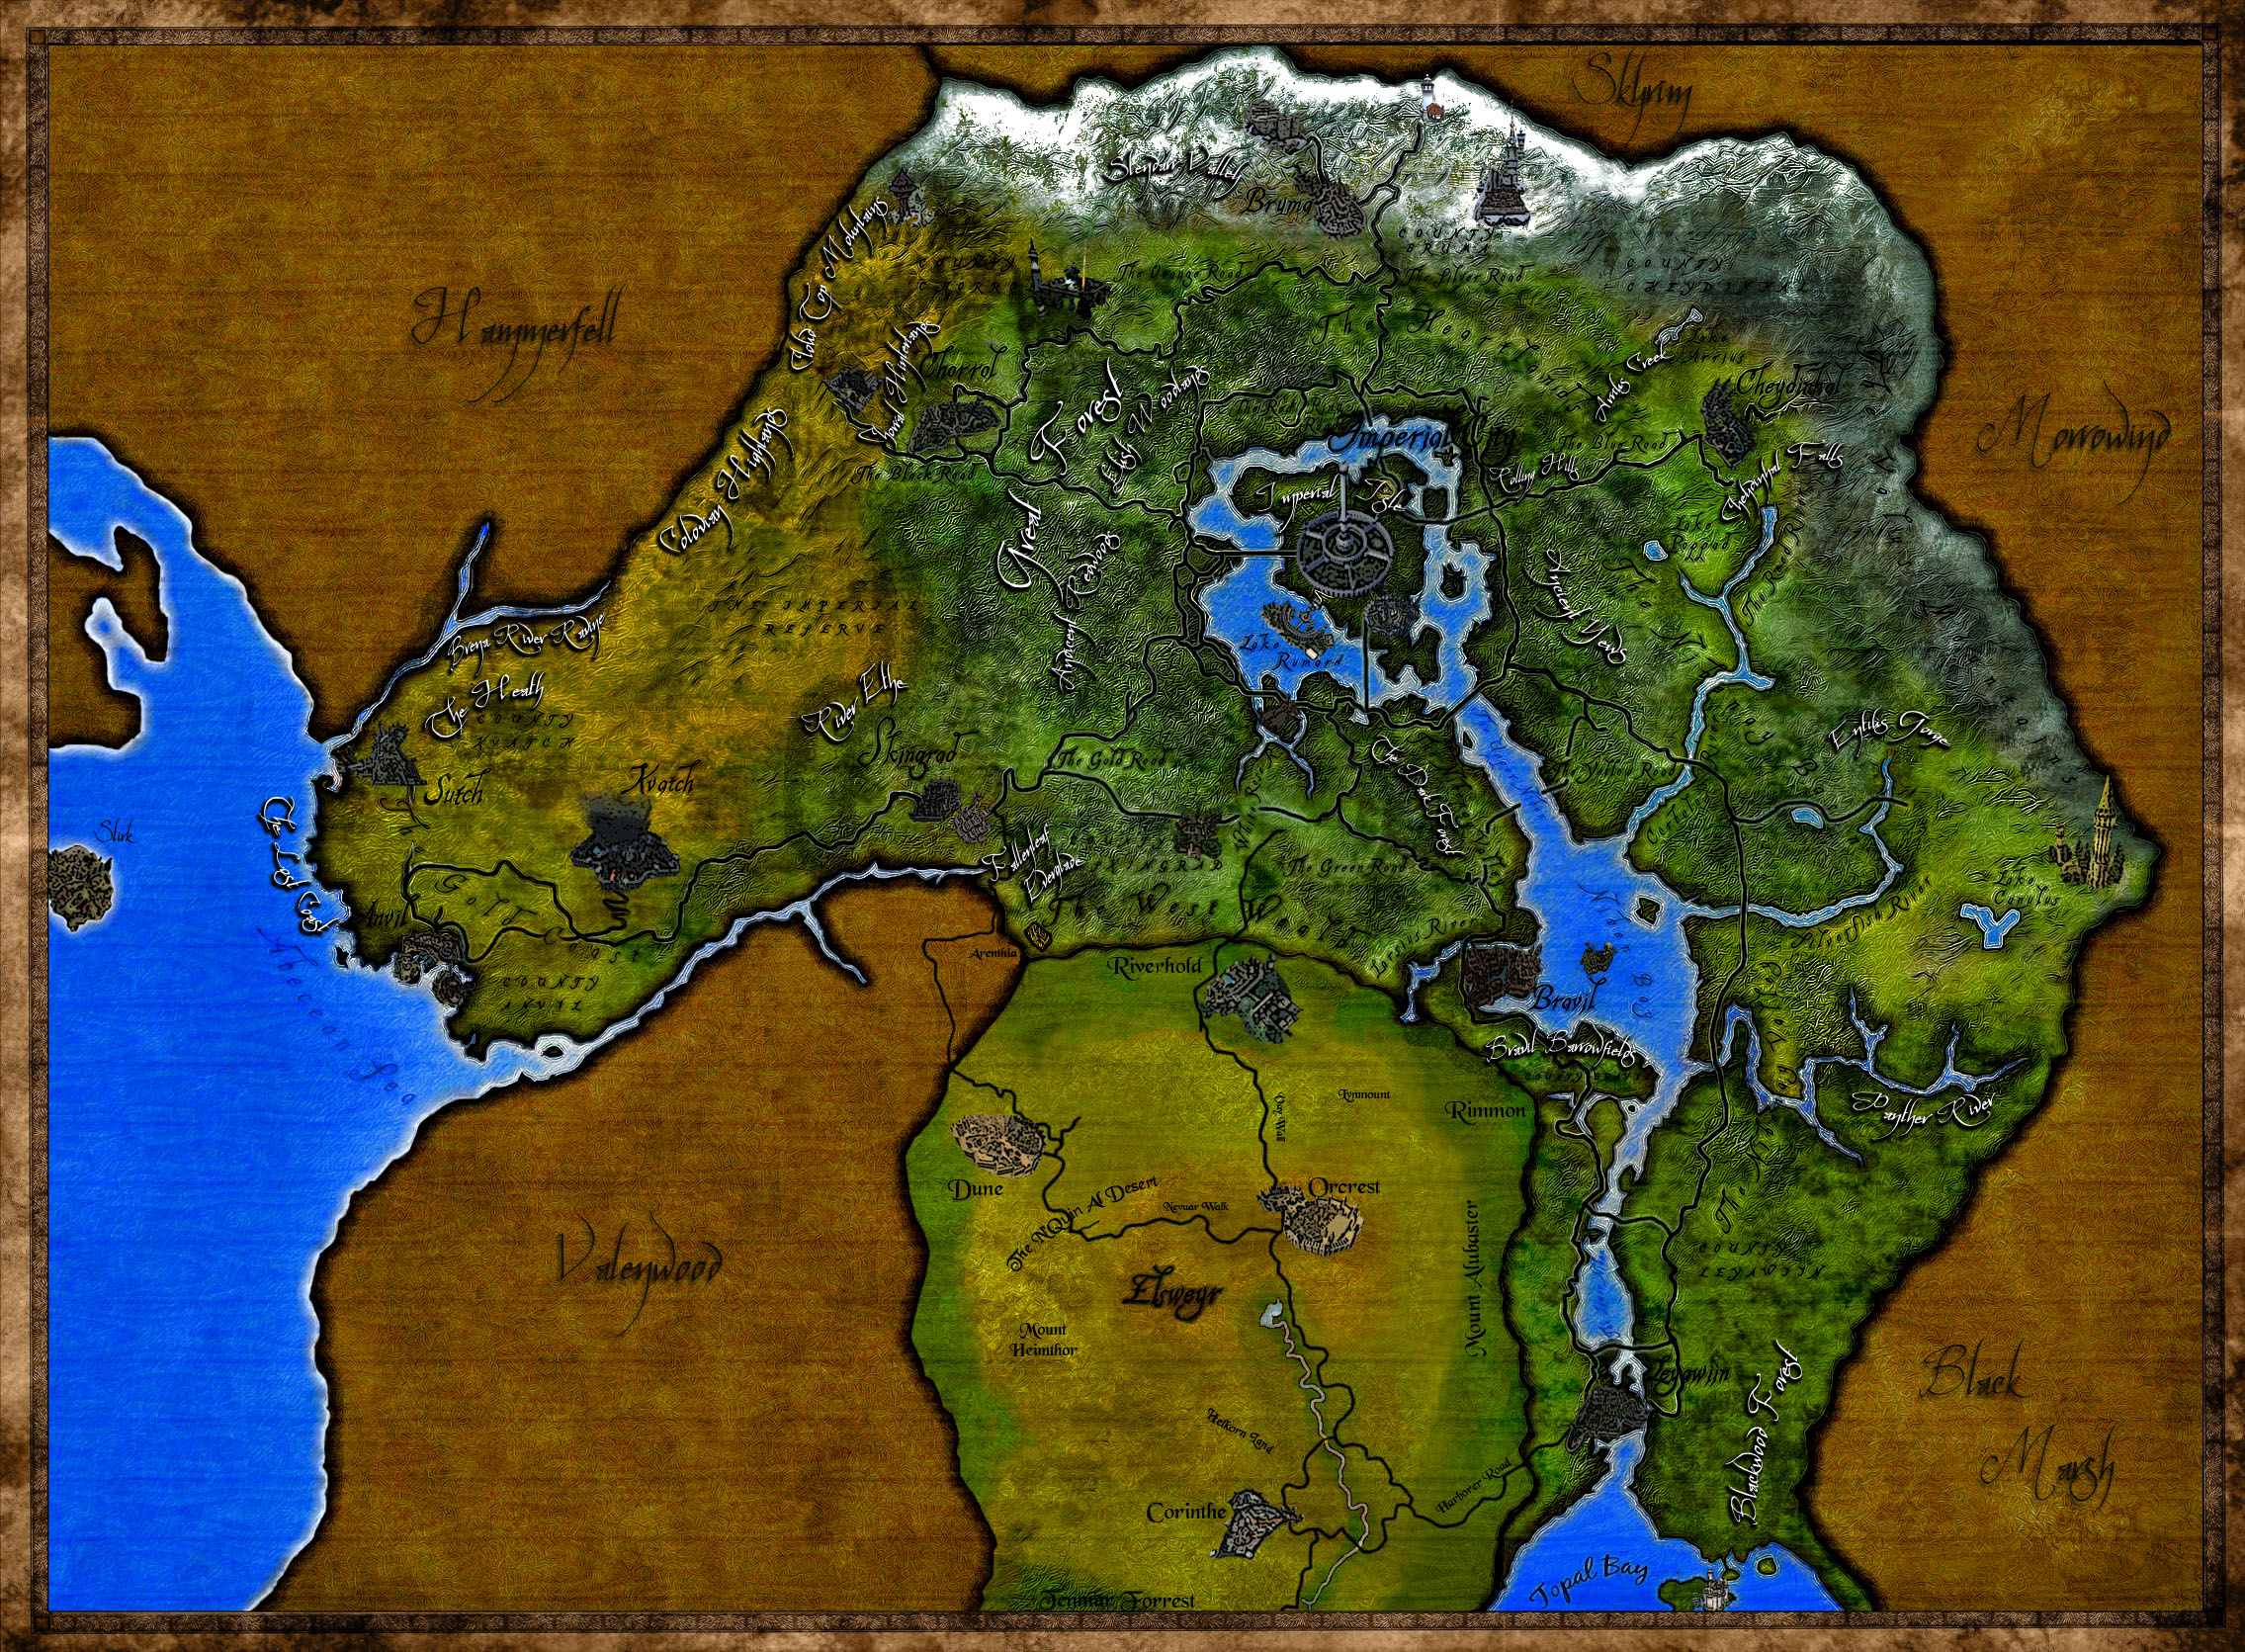 27791-2-1256357956 Detailed Map Of Oblivion on detailed map of martha's vineyard, detailed map of west ireland, detailed map of san bernardino, detailed map of grenada beaches, detailed map of divergent, detailed map of uk, detailed map of new england, detailed map of tamriel, detailed map of northern europe, detailed map of ohio state, detailed map of the us, detailed map of cyrodiil, detailed map of the world, detailed map of indiana pa, detailed map of modern israel, detailed map of pinellas trail, detailed map of skyrim, detailed map of the philippines, detailed map of fallujah, detailed map of east africa,